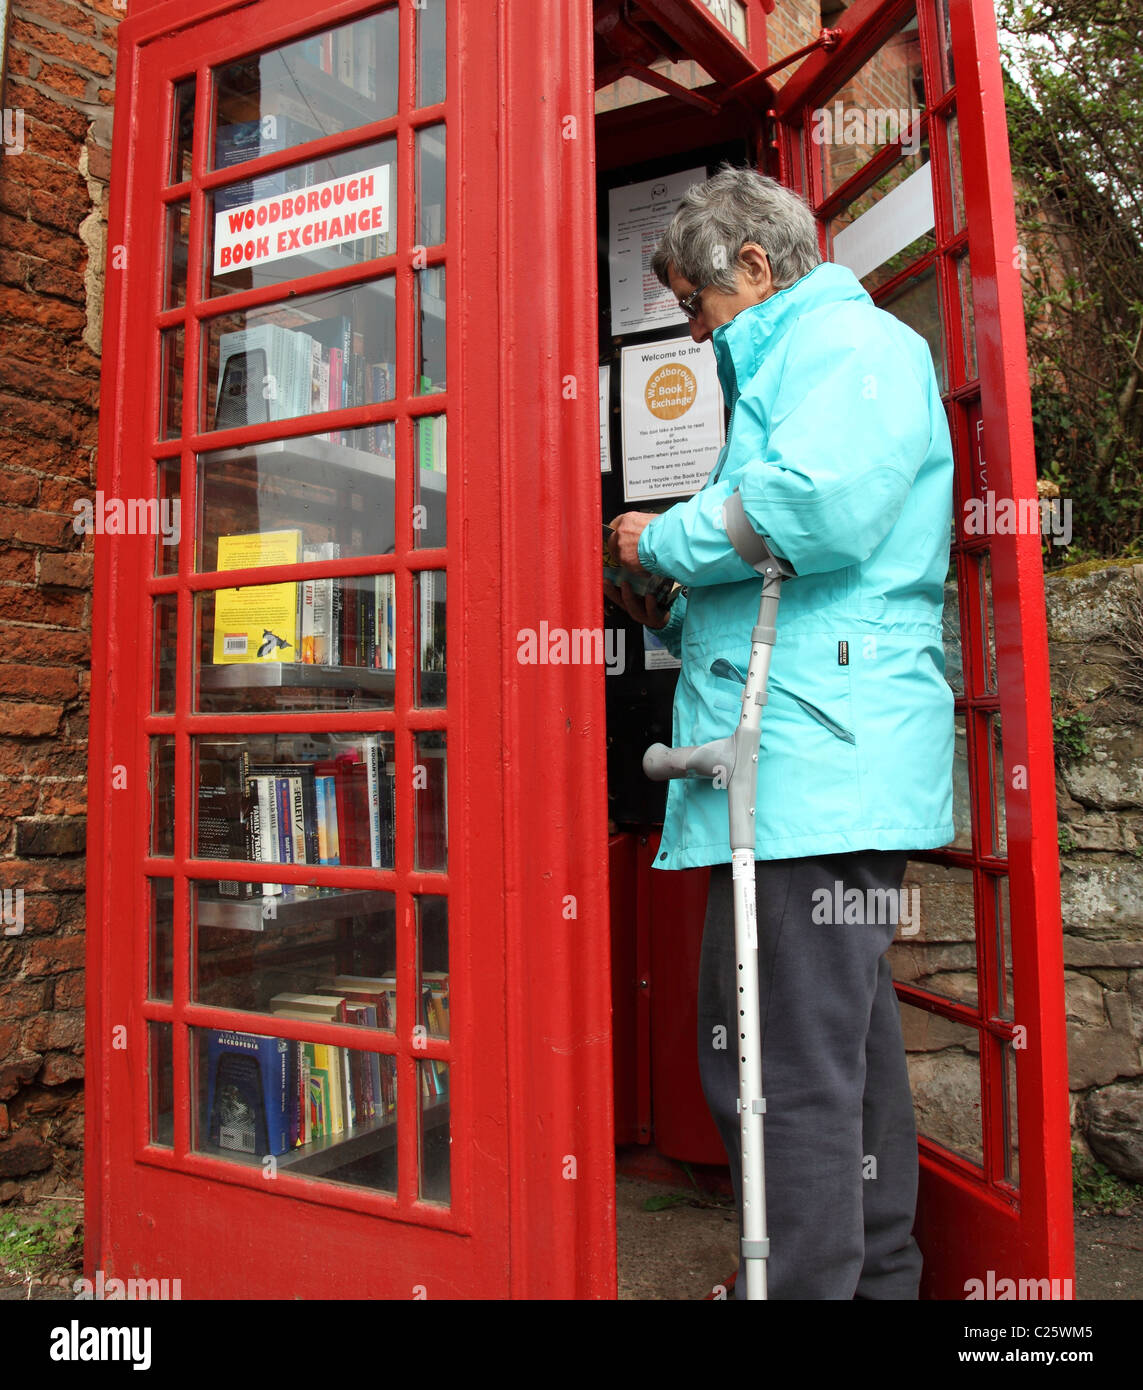 Woodborough Book Exchange in a converted telephone box in the village of Woodborough, Nottinghamshire, England, - Stock Image